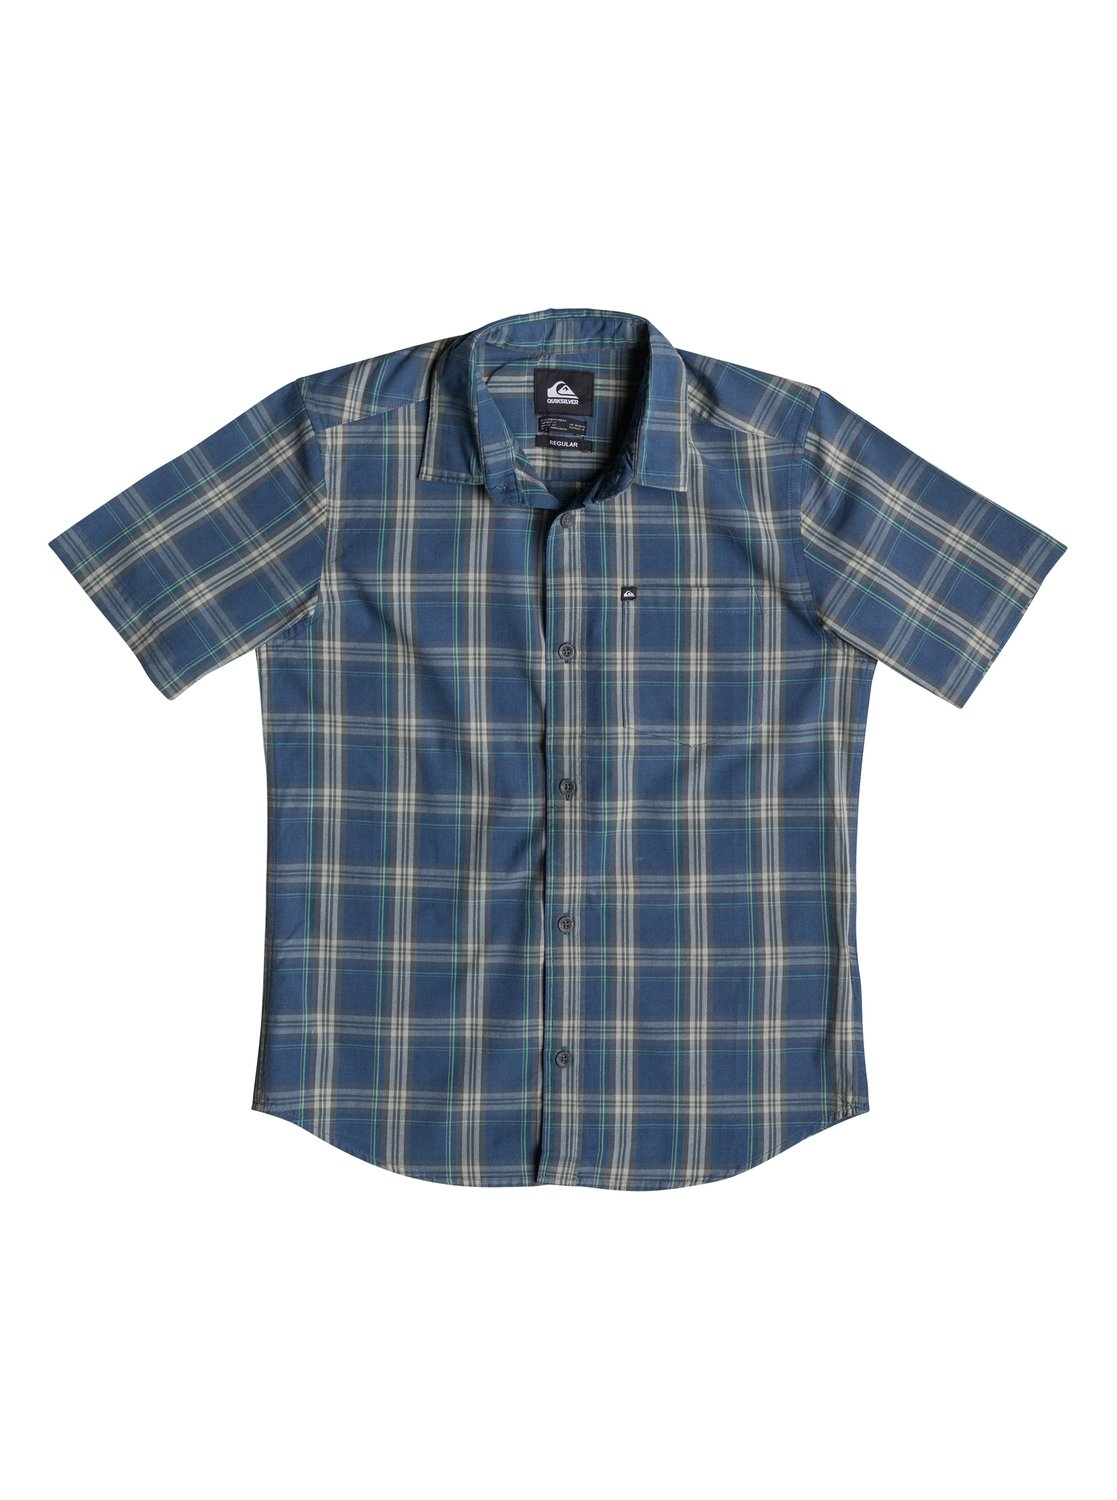 Everyday Check SS Youth - Quiksilver������� � �������� ������� ��� ��������� �� Quiksilver � ������� �� ��������� ����� 2015. ��������������: ����������� ����, ������ �� �������������� ������, � ������.<br>